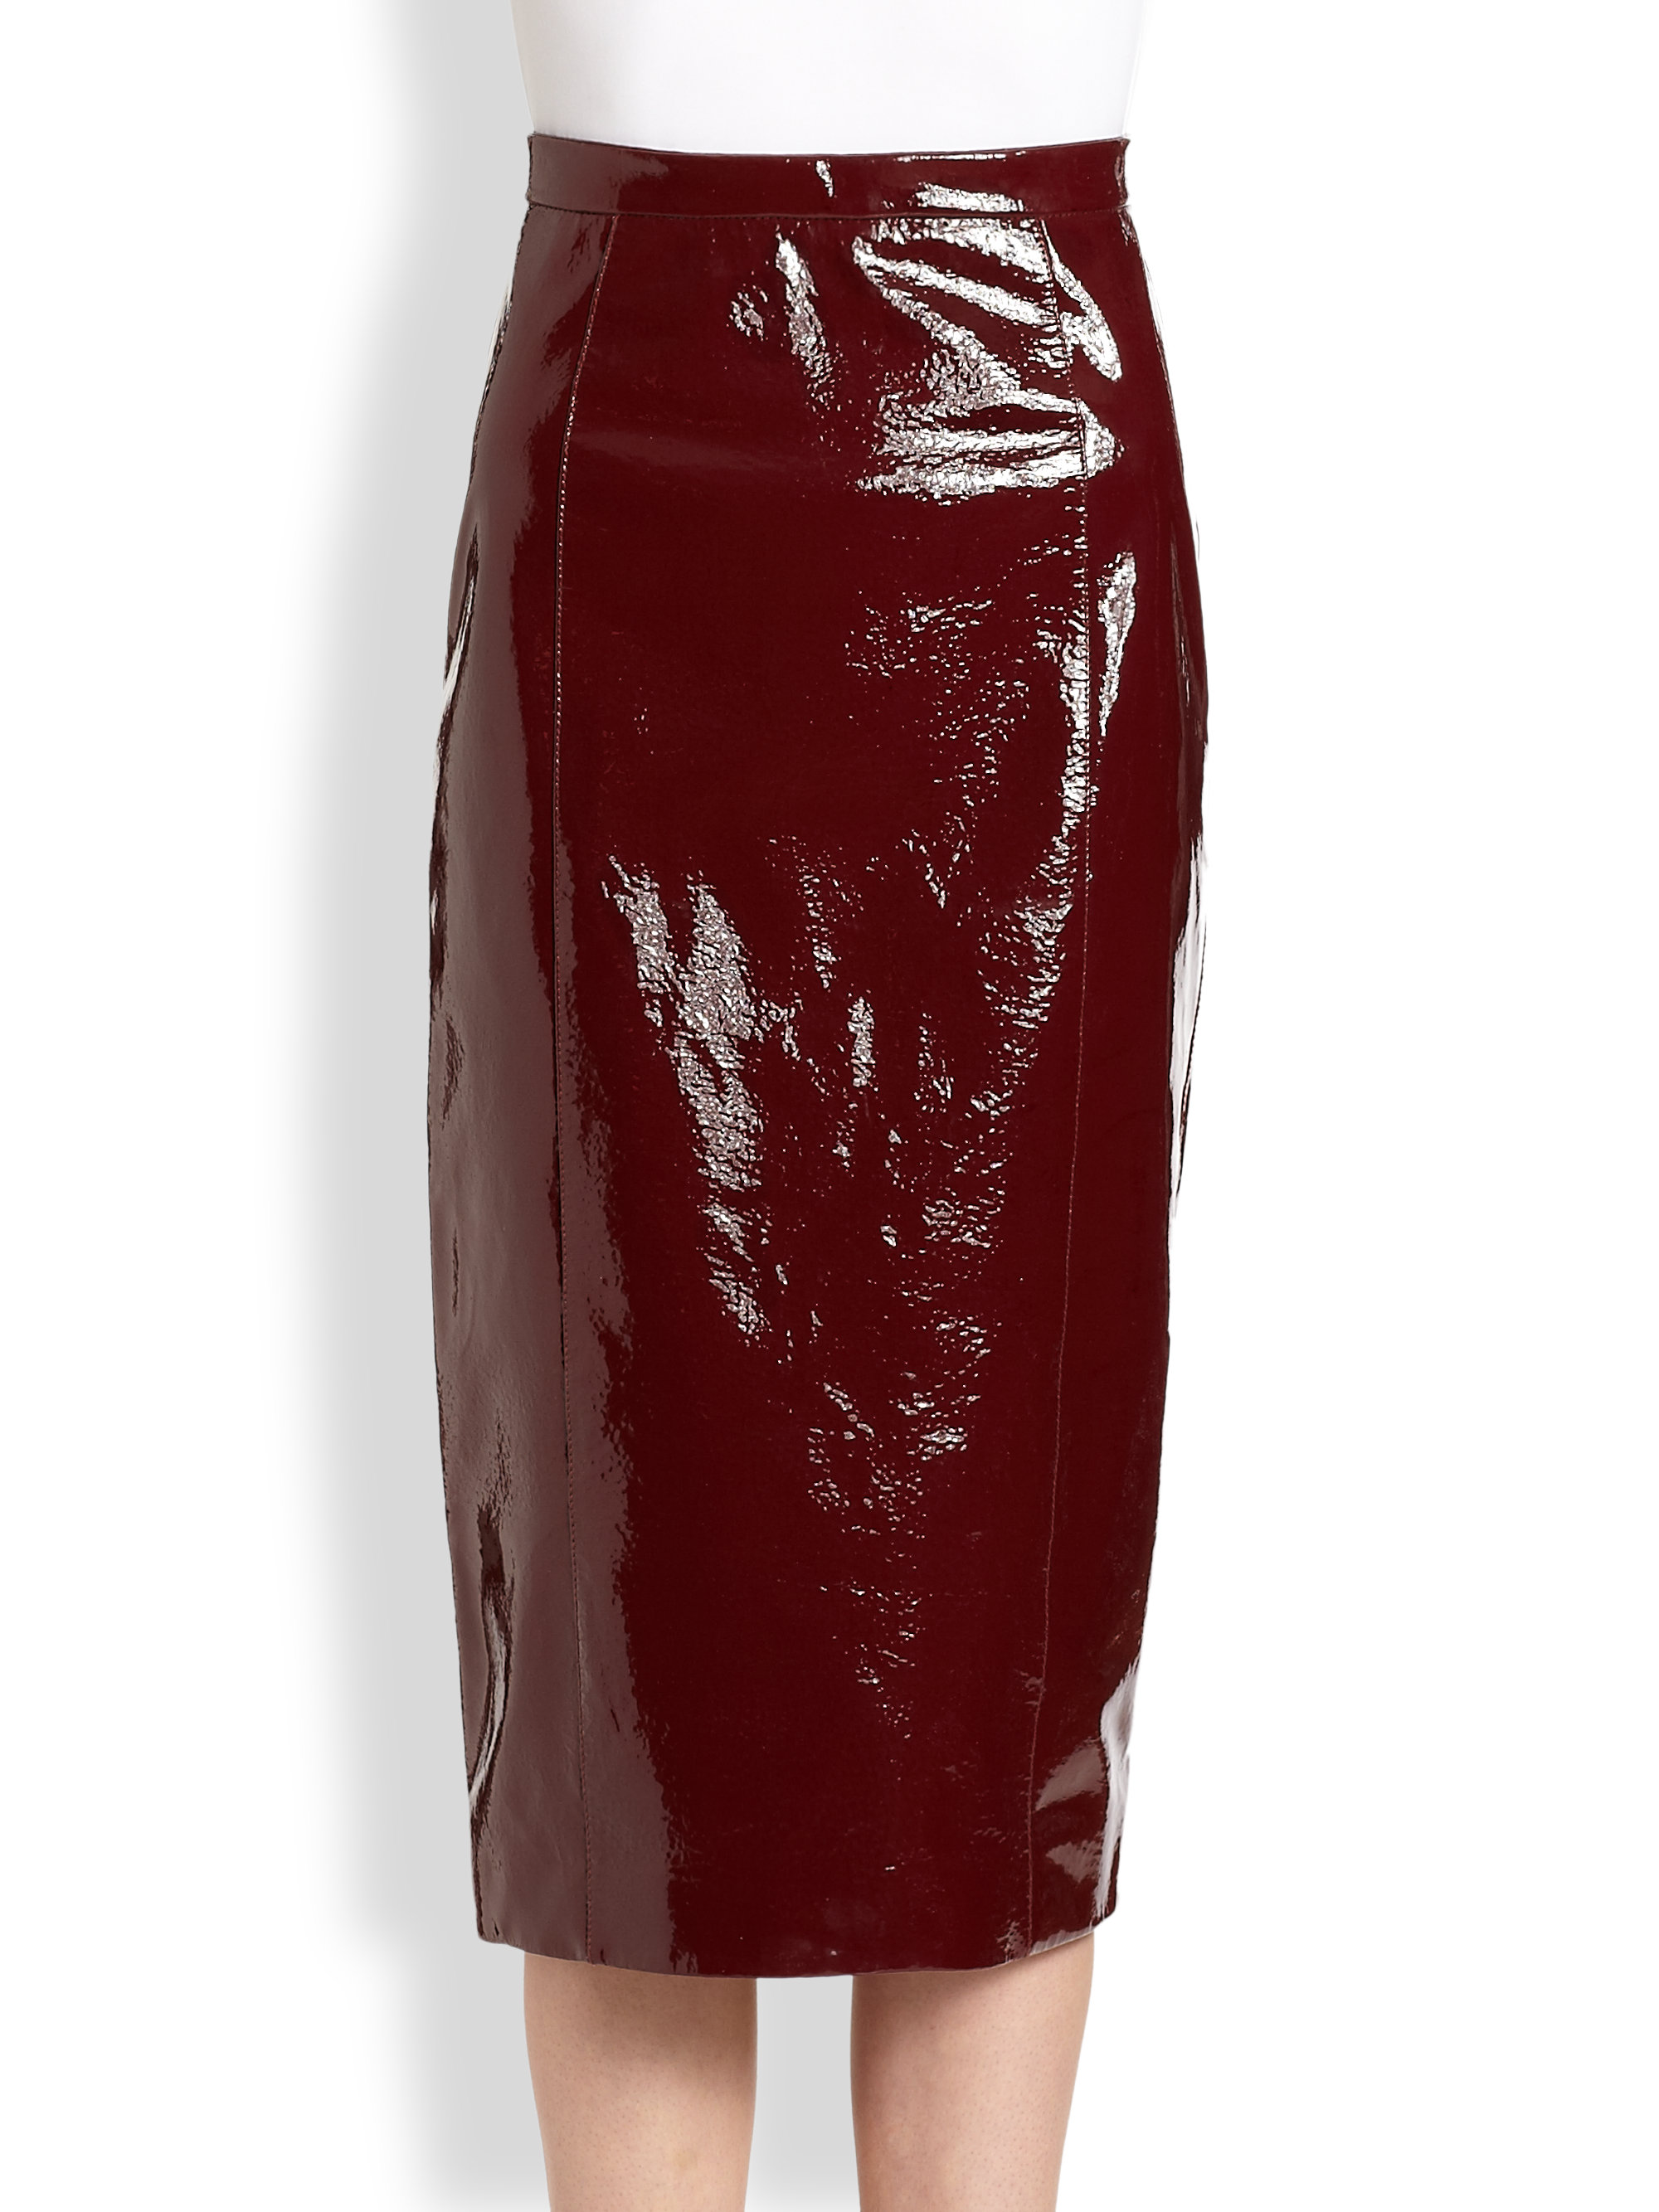 Lyst Burberry Prorsum Patent Leather Skirt In Red